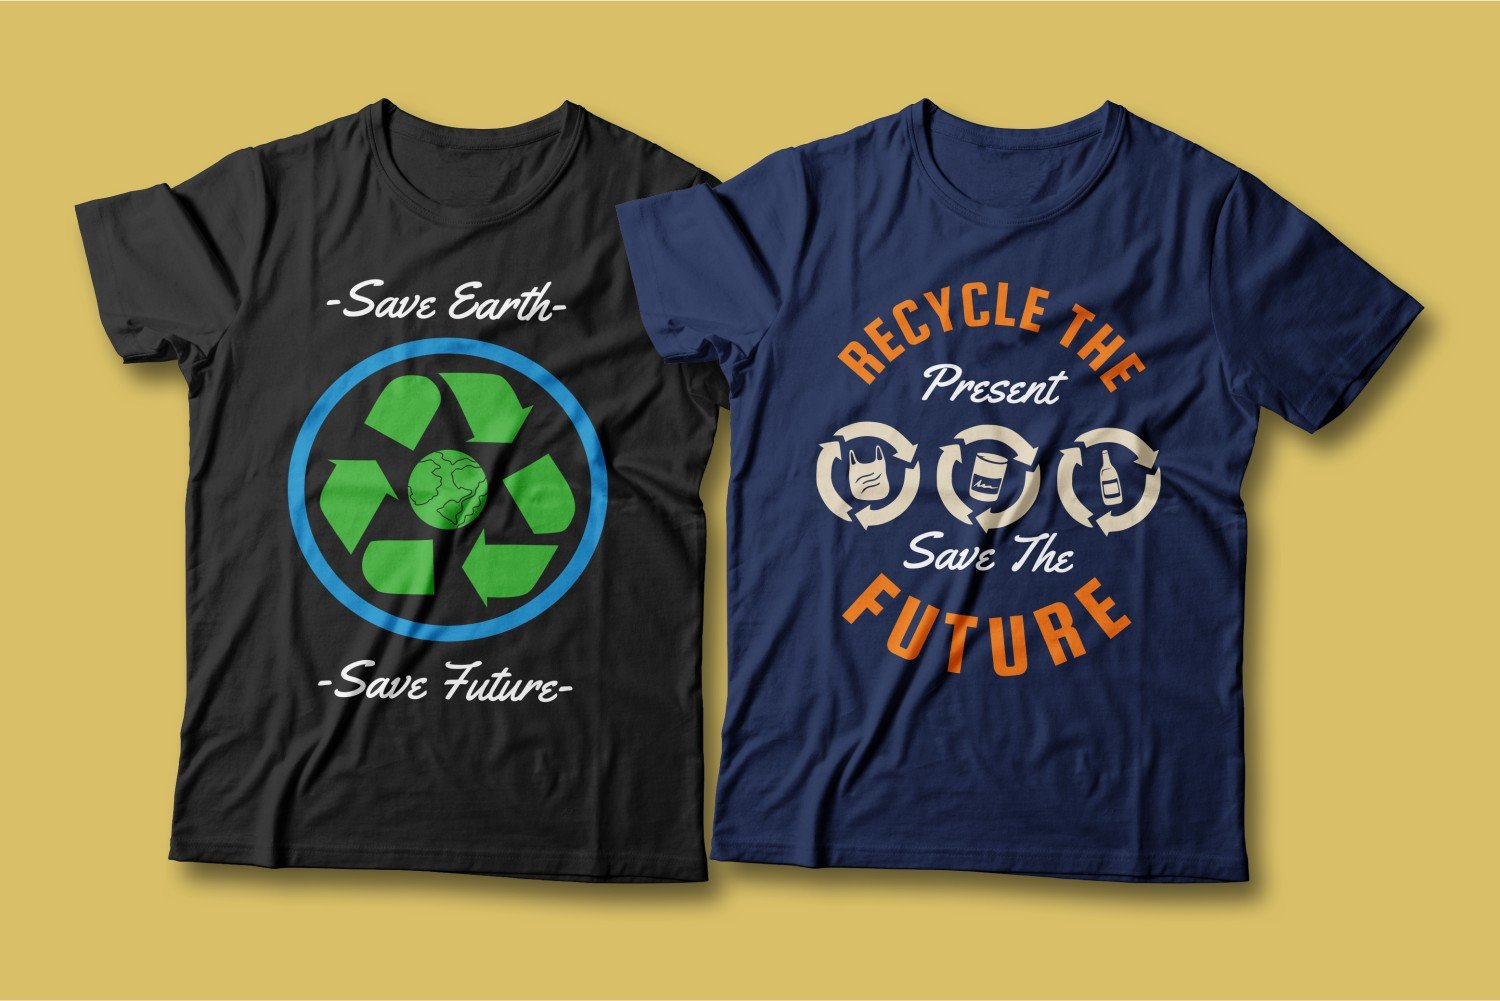 Two T-shirts - one black with the image of a green planet surrounded by trash, the other - green with recycling.